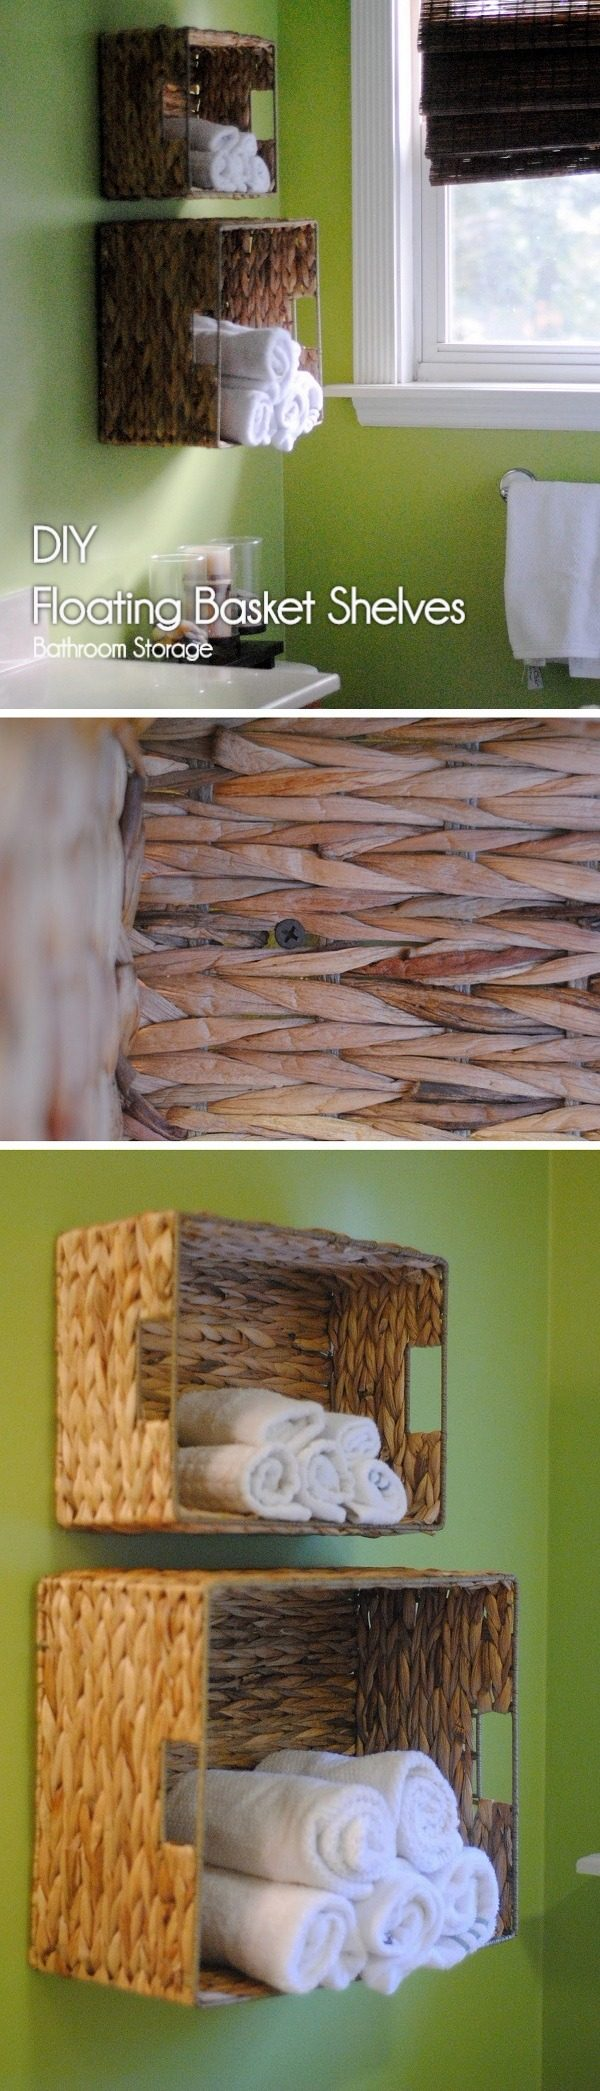 Check out how to build #DIY wall suspended basket shelves in minutes #BathroomIdeas #HomeDecorIdeas #RusticDecor